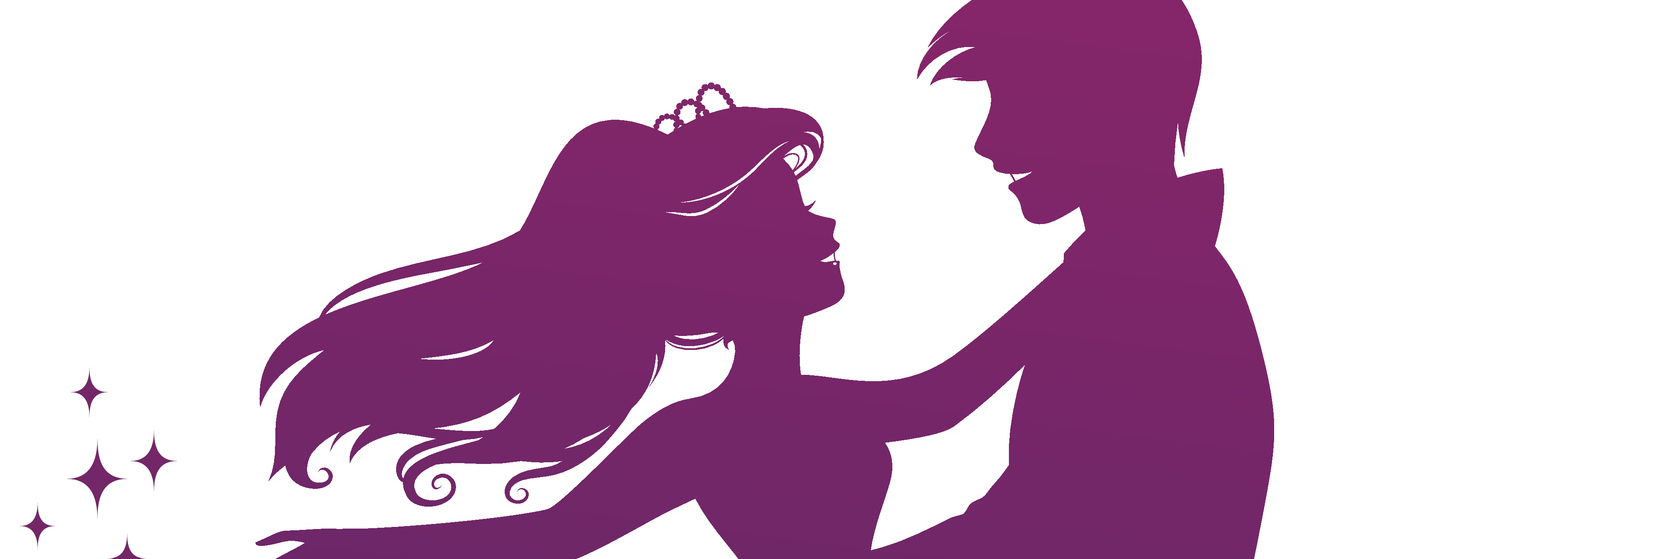 silhouette of prince and princess dancing together